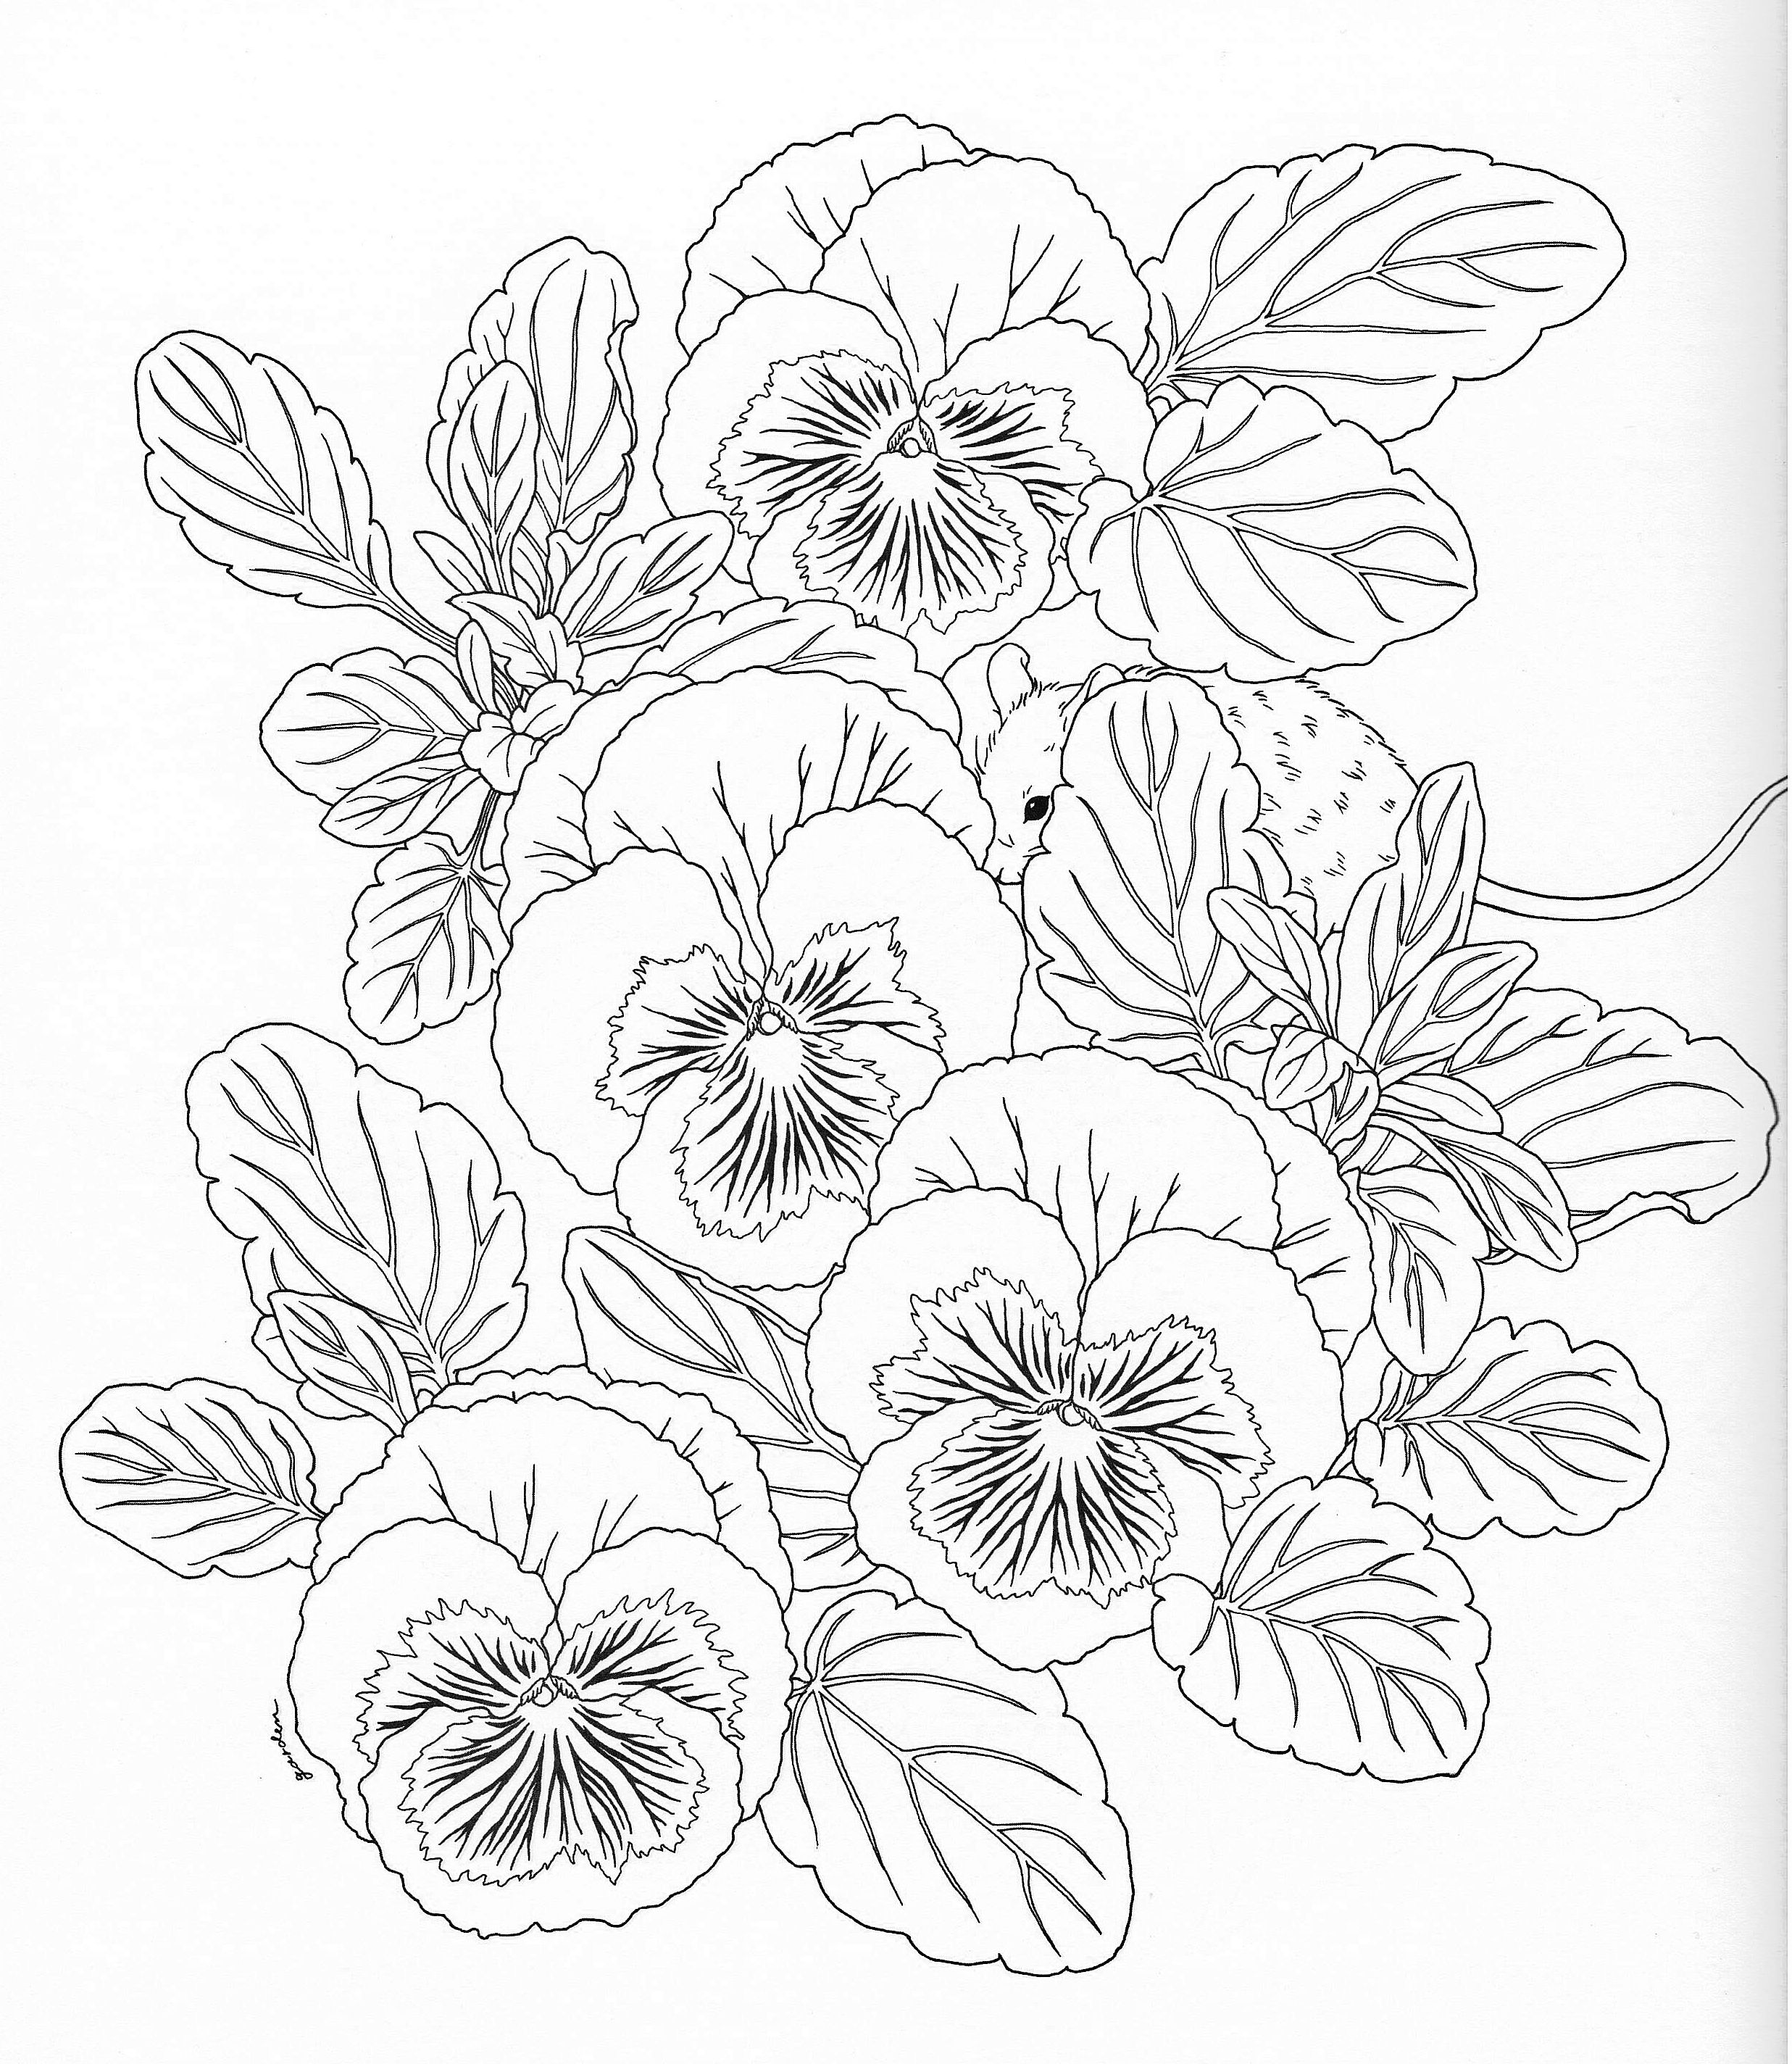 Harmony Of Nature Adult Coloring Book Pg 11